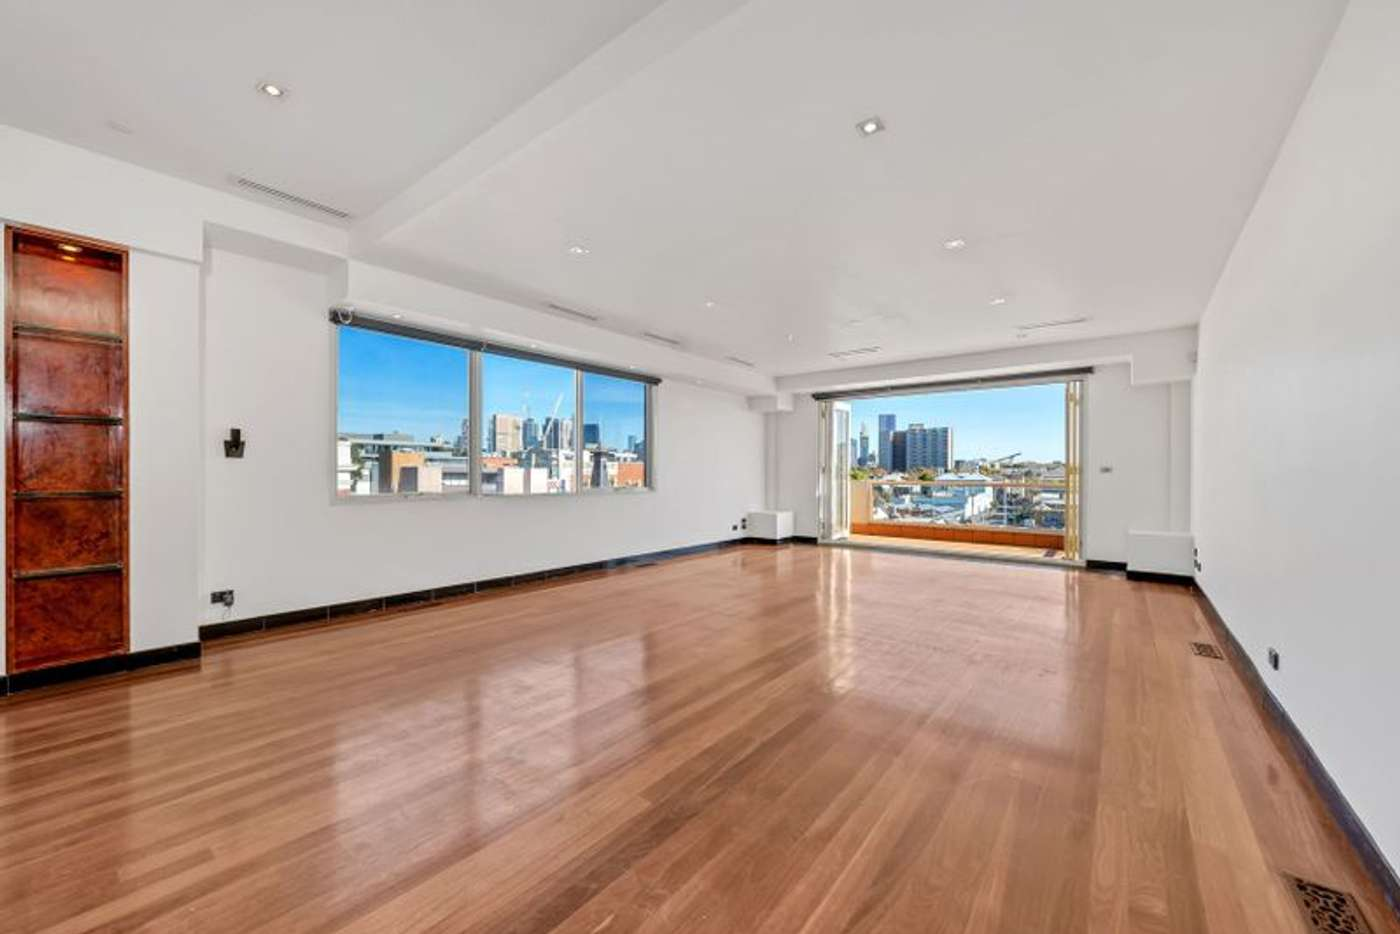 Seventh view of Homely apartment listing, 27/115 Oxford Street, Collingwood VIC 3066